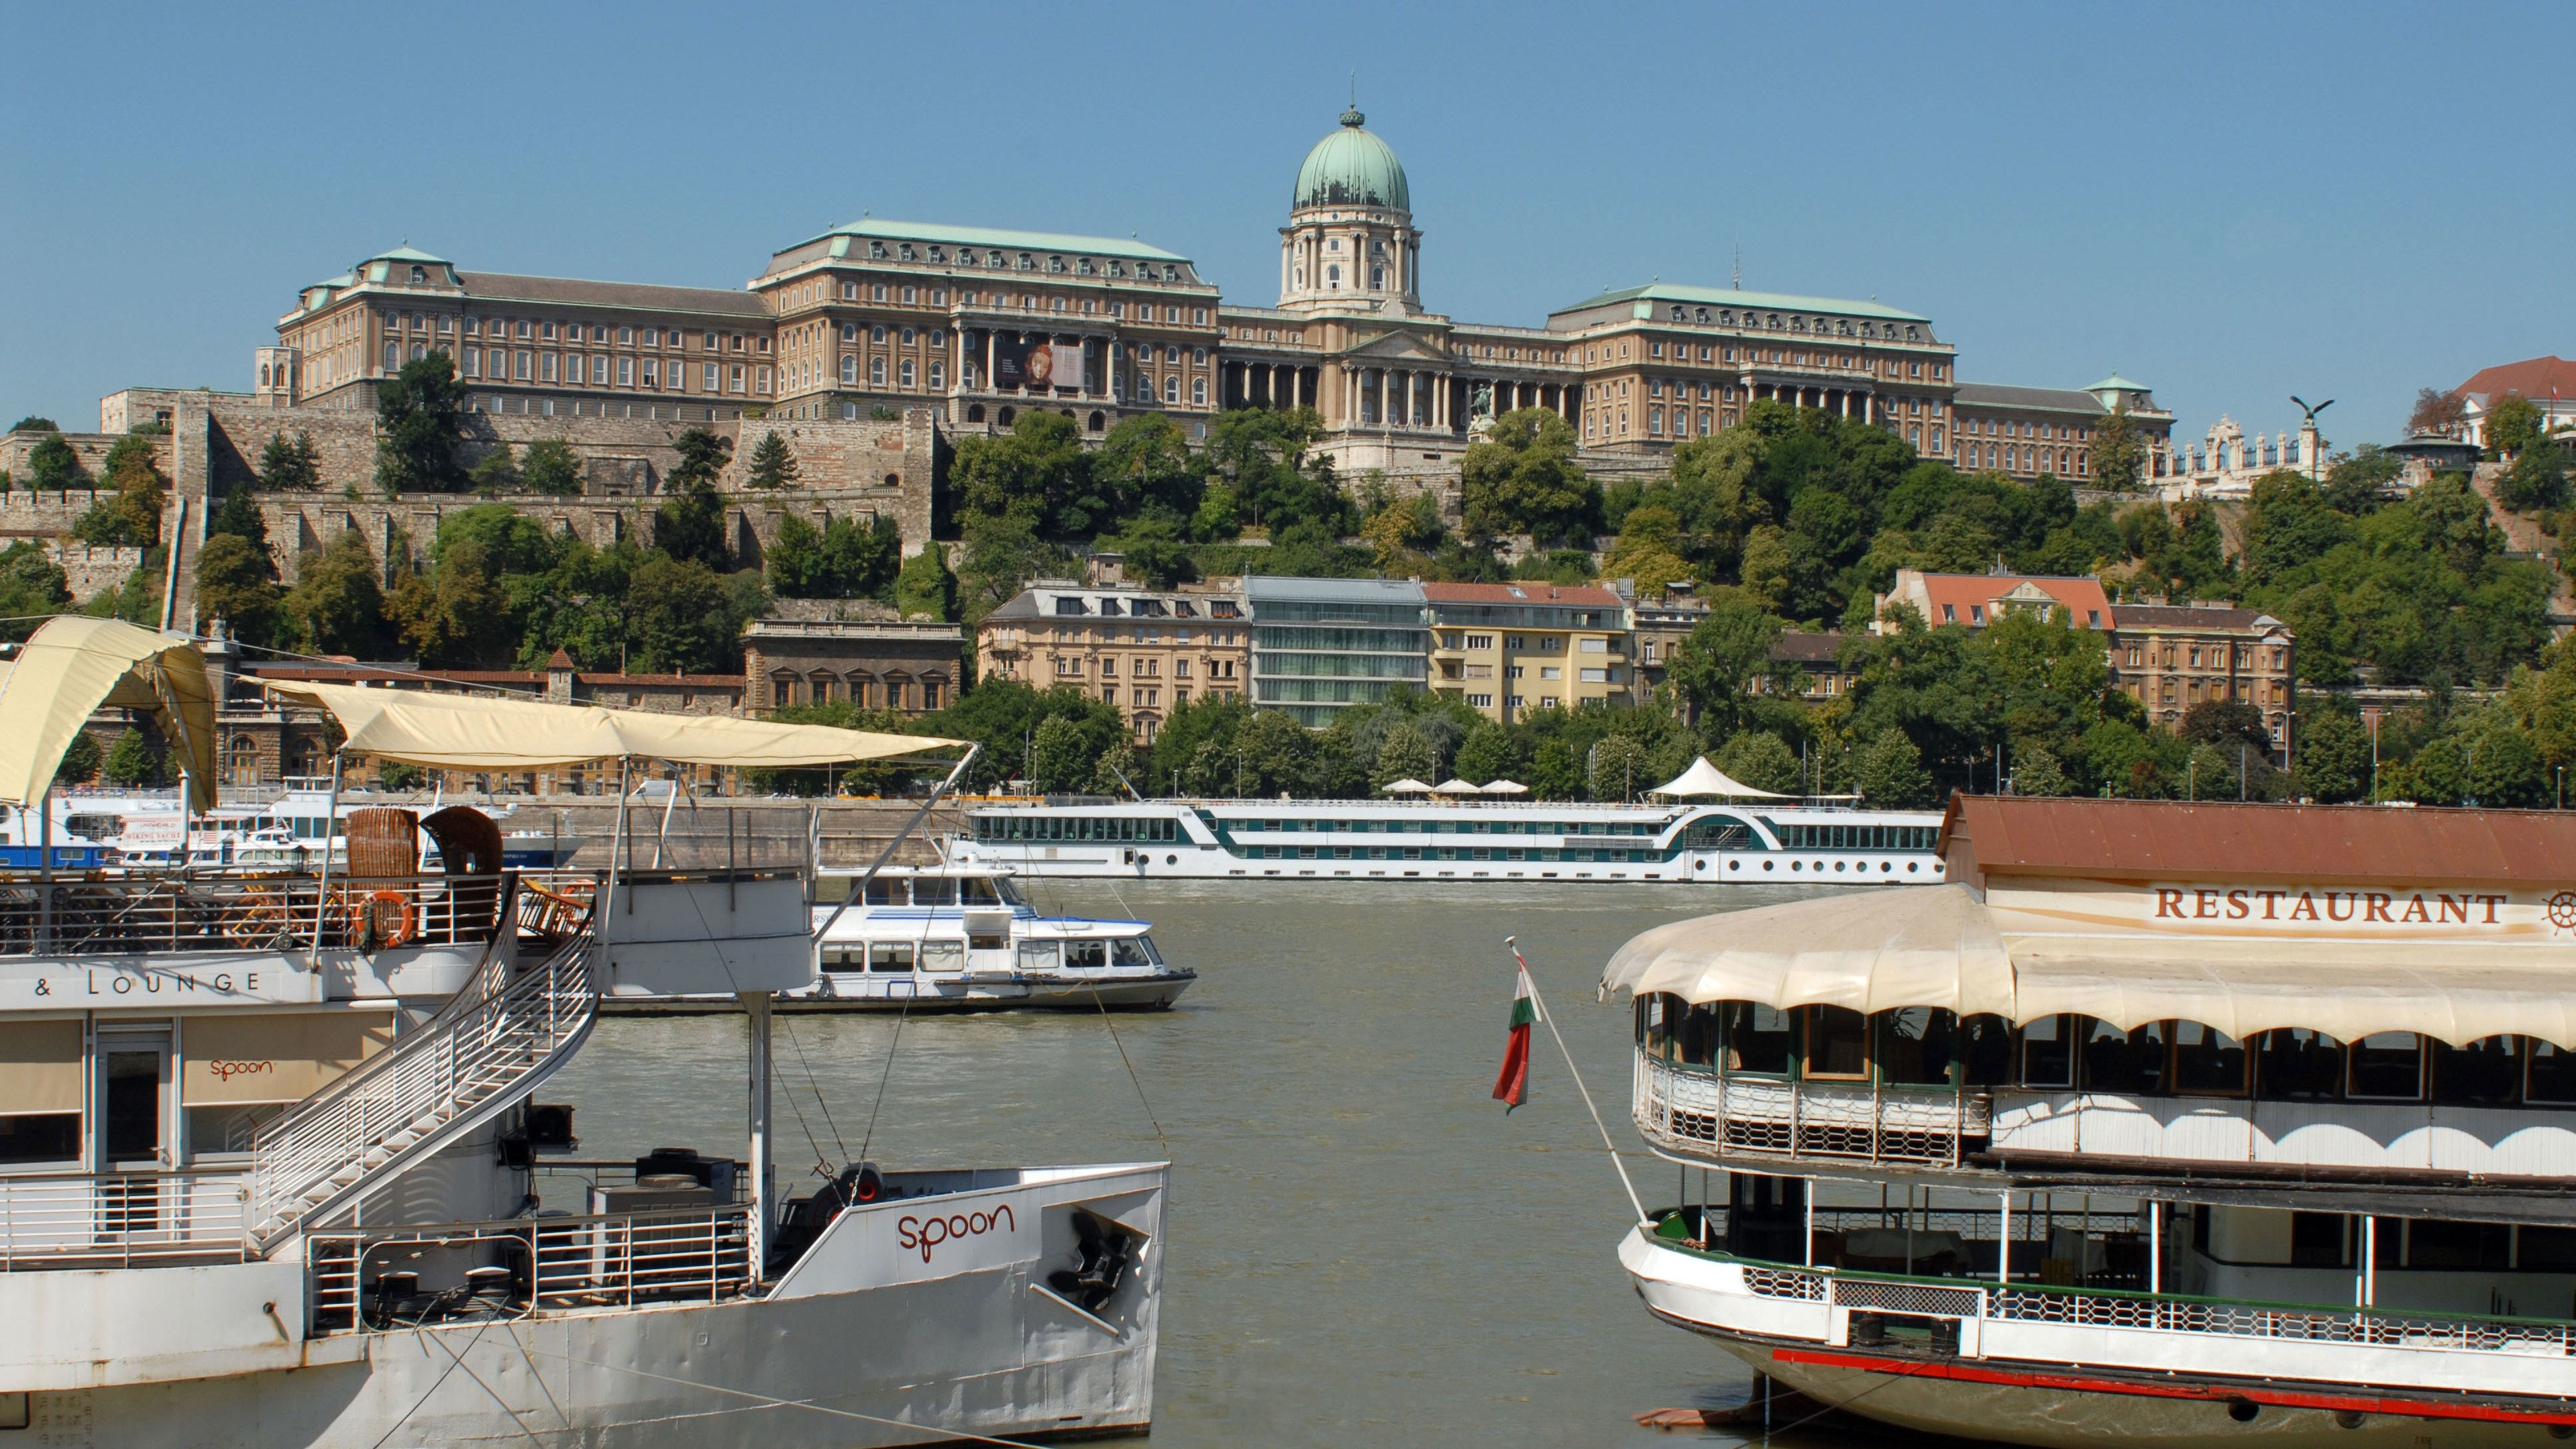 Half-Day Sightseeing Tour with Optional Parliament or Cruise